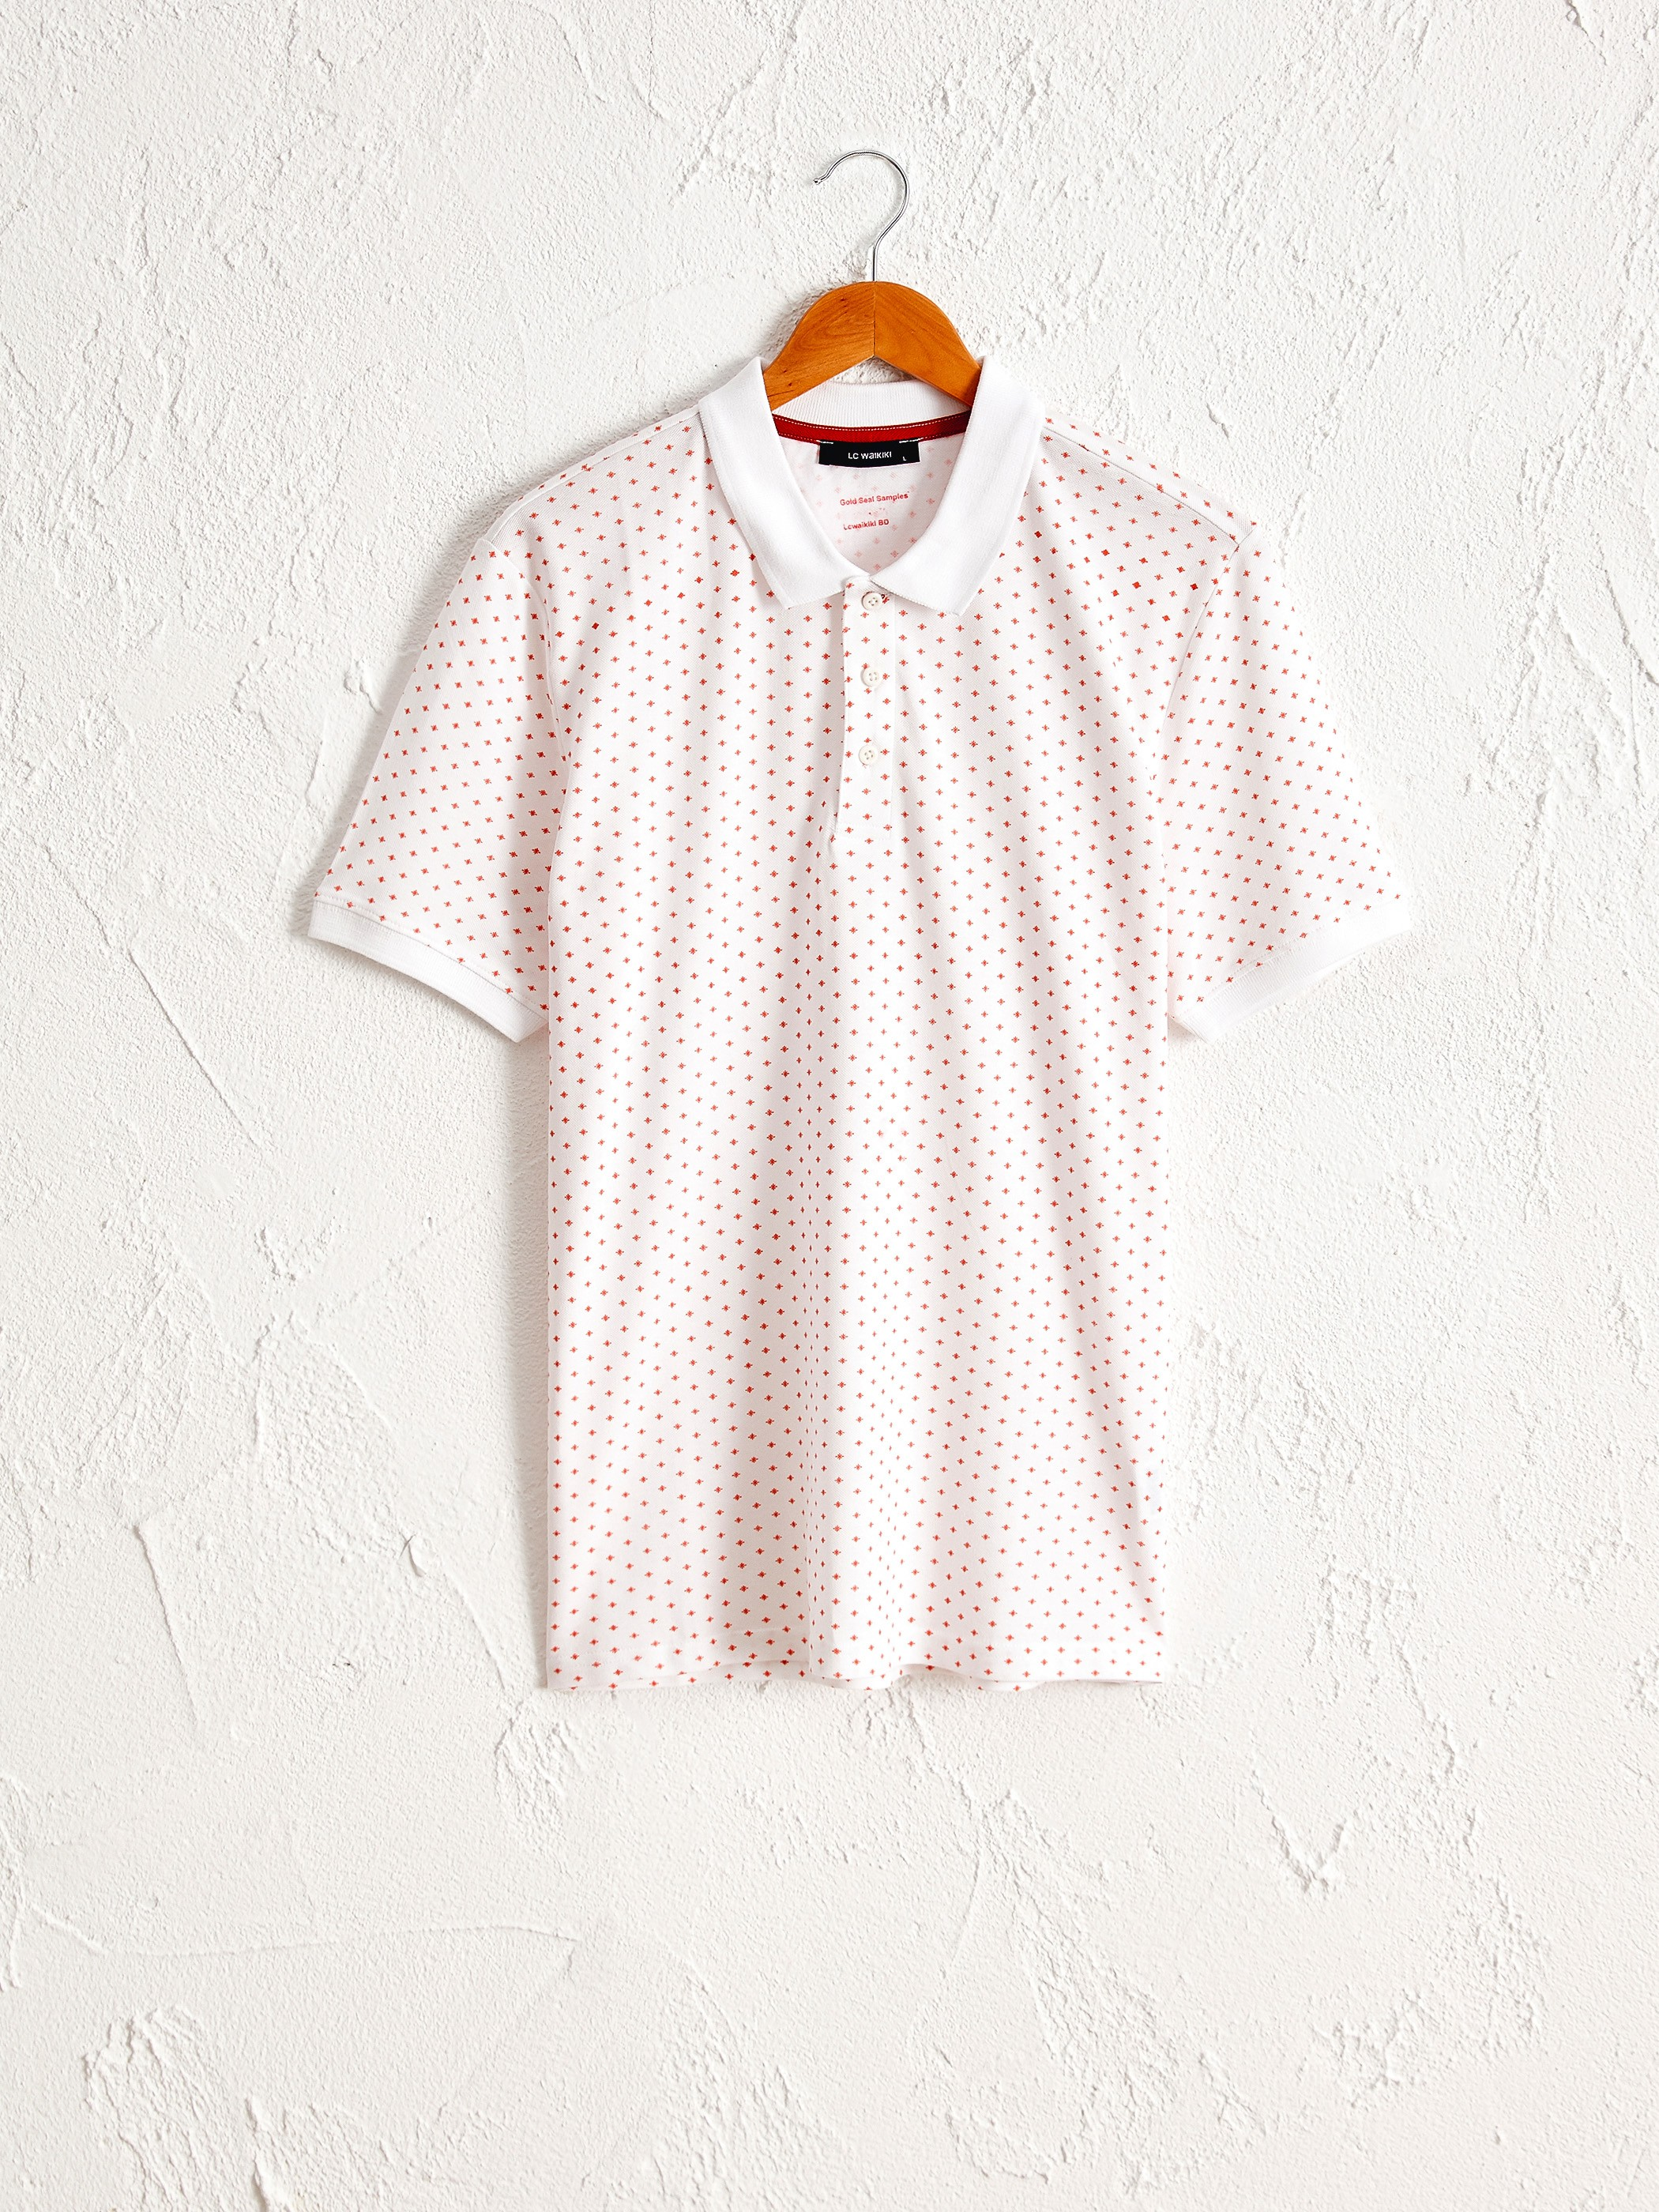 WHITE - Polo Neck and Short Sleeve Cotton T-Shirt - 0SM146Z8